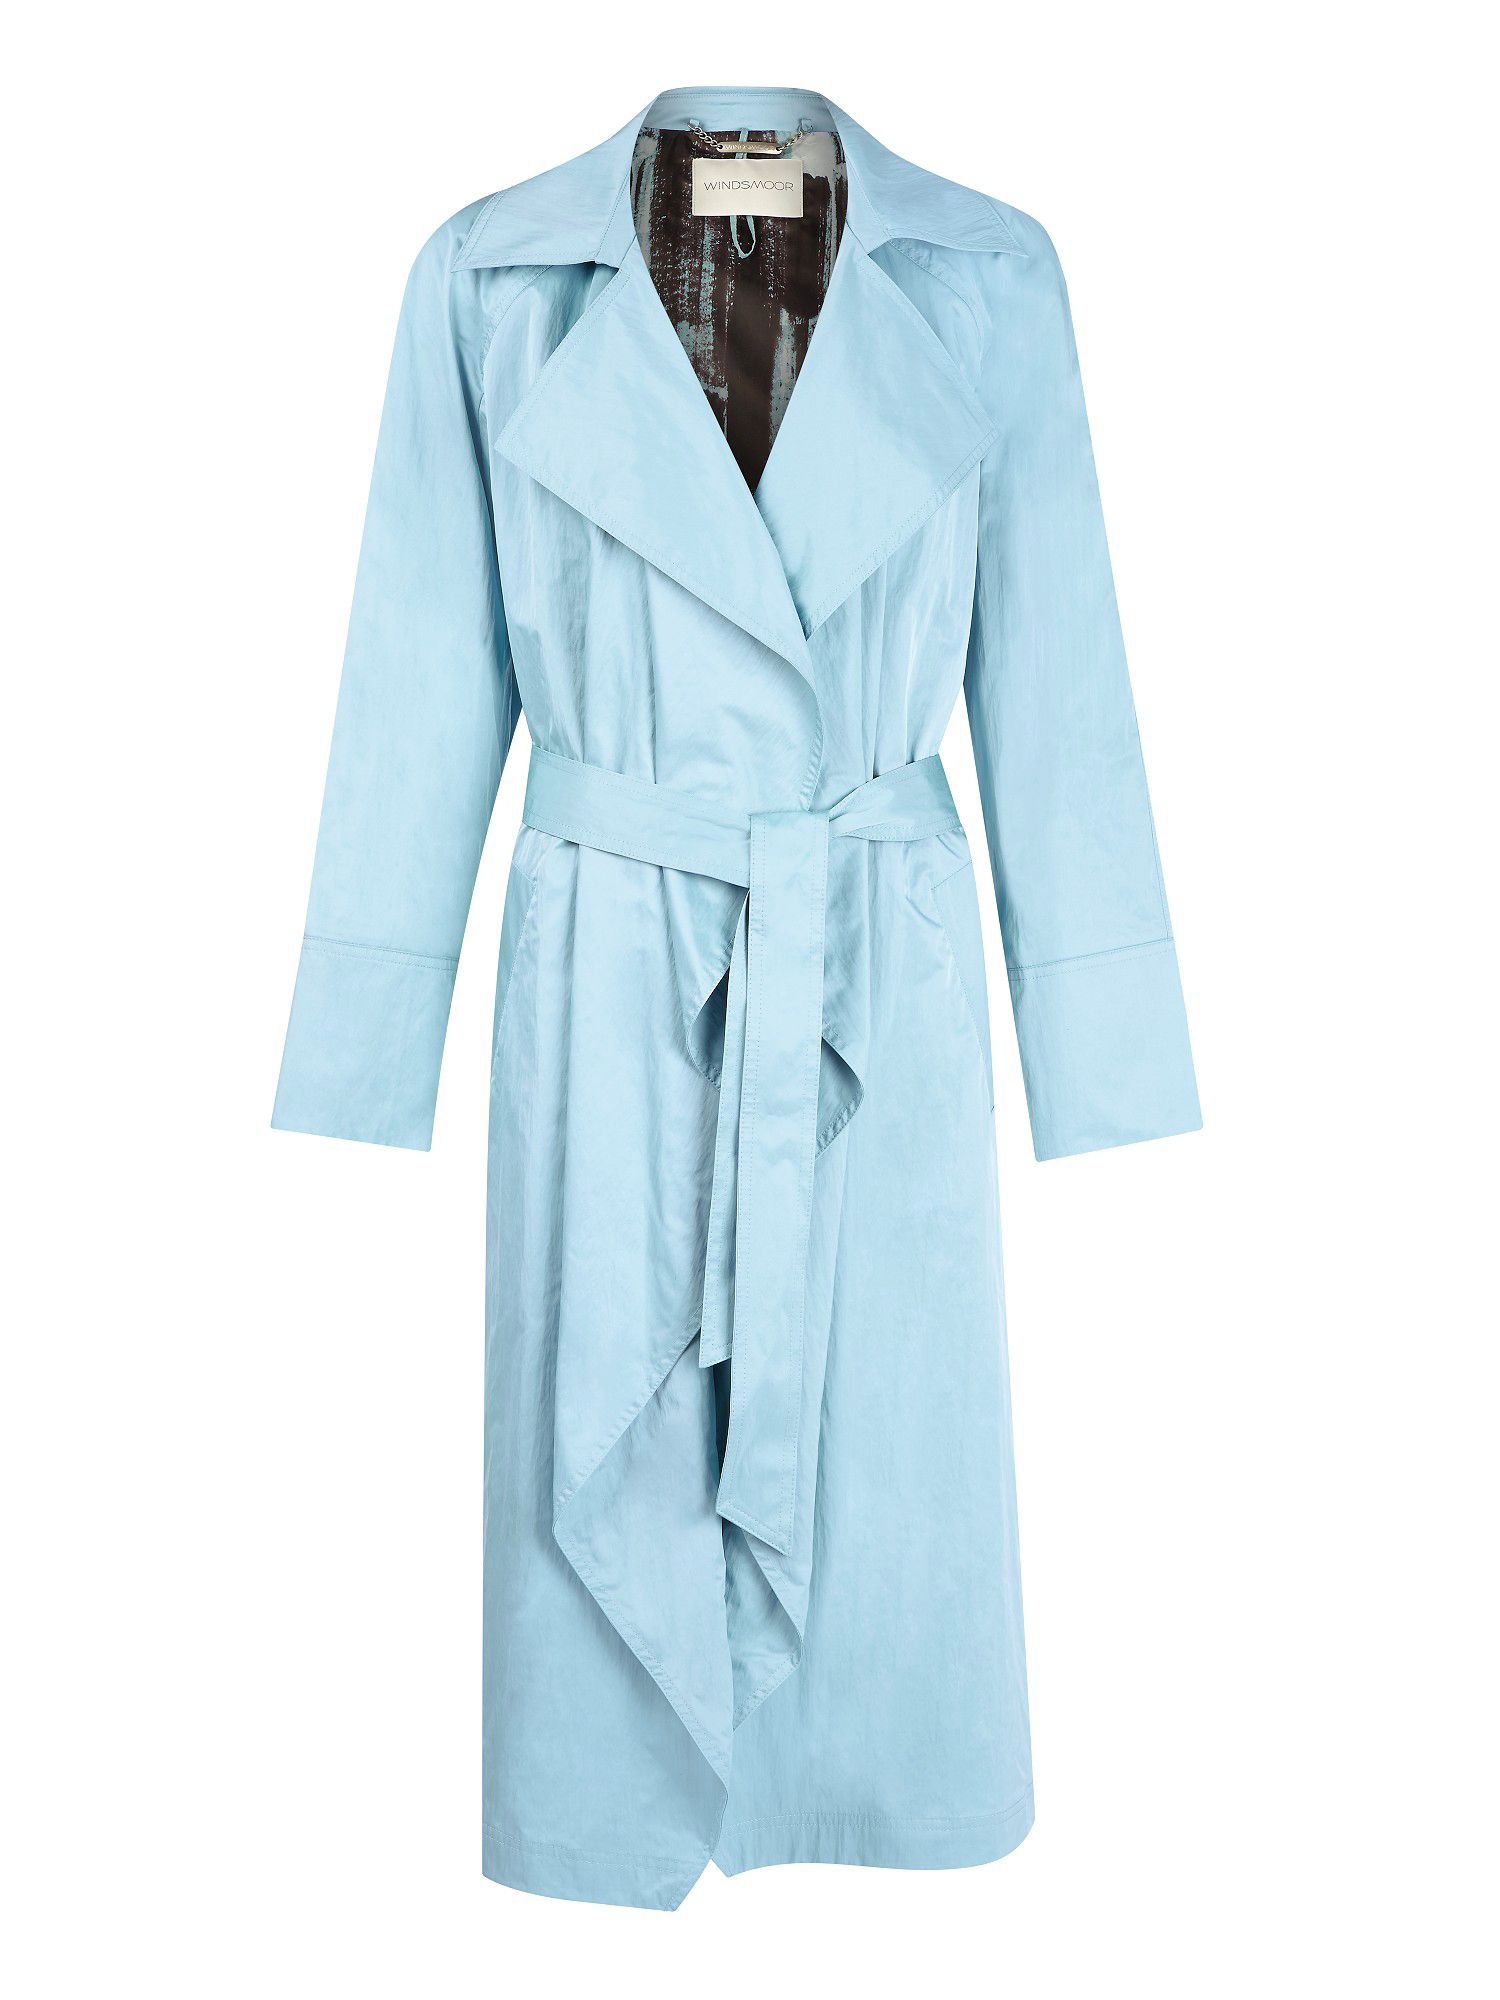 Ice blue waterfall raincoat